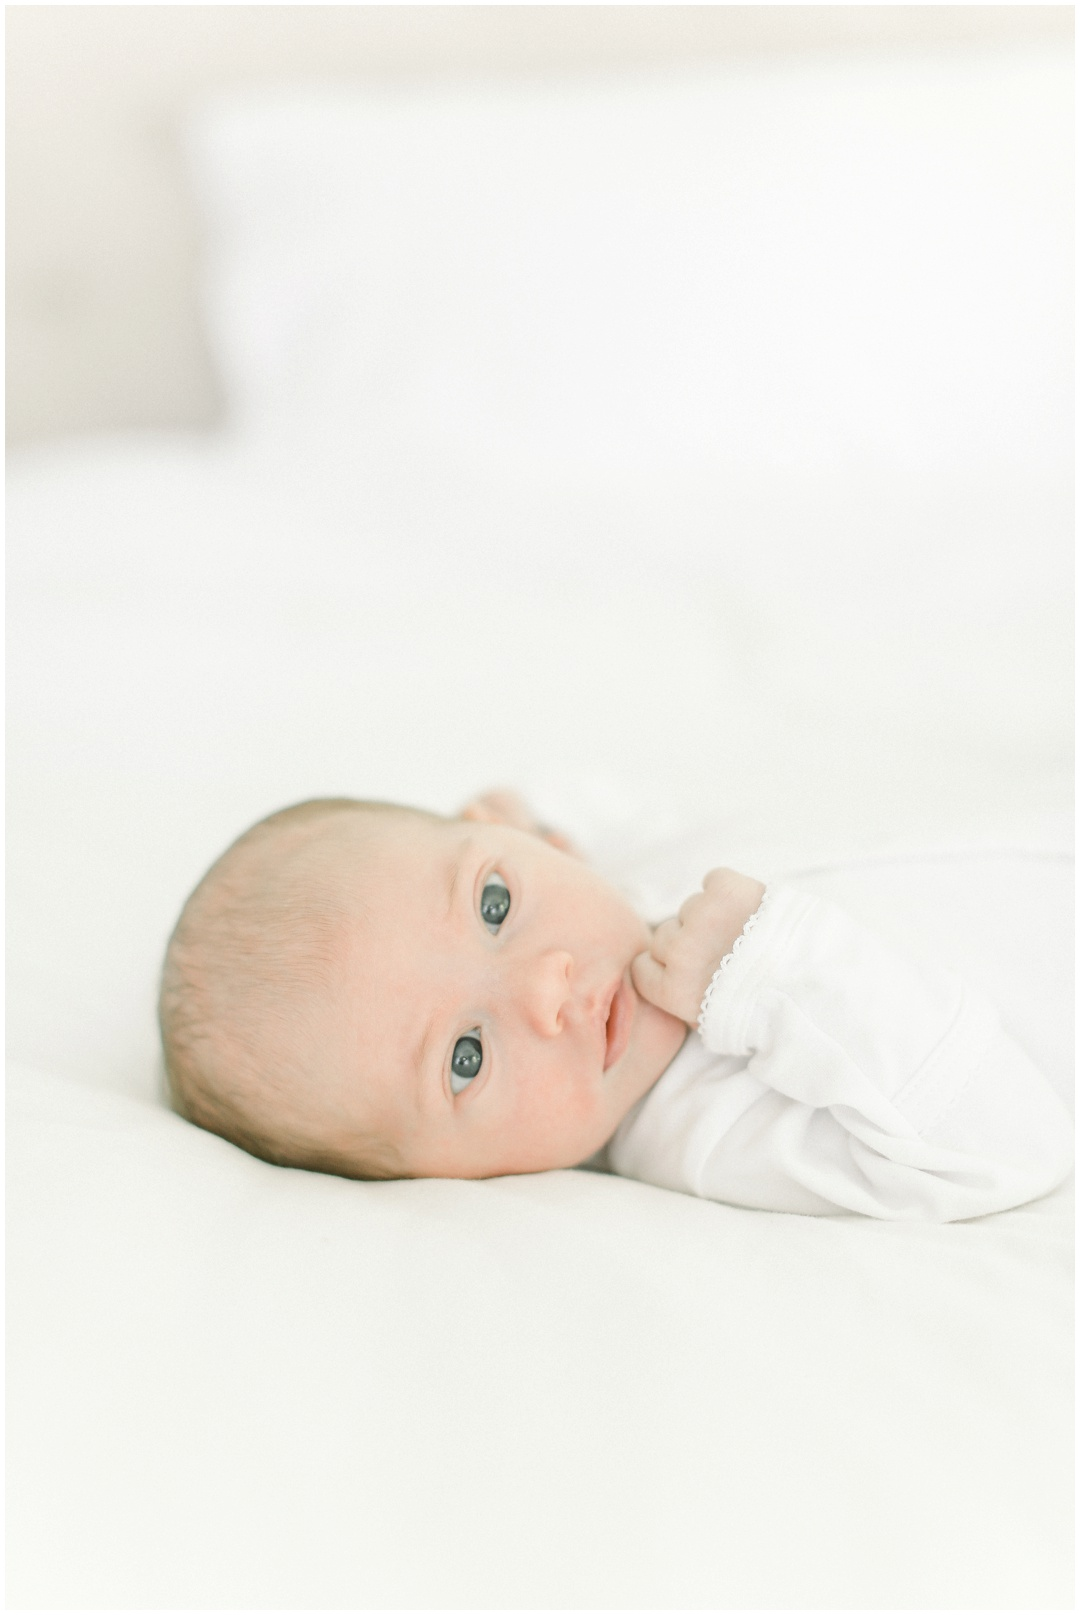 Newport_Beach_Newborn_Light_Airy_Natural_Photographer_Newport_Beach_Photographer_Orange_County_Family_Photographer_Cori_Kleckner_Photography_Newport_Beach_Photographer_newborn_Stephanie_Messiter_Steinhafel_David_Steinhafel_3831.jpg